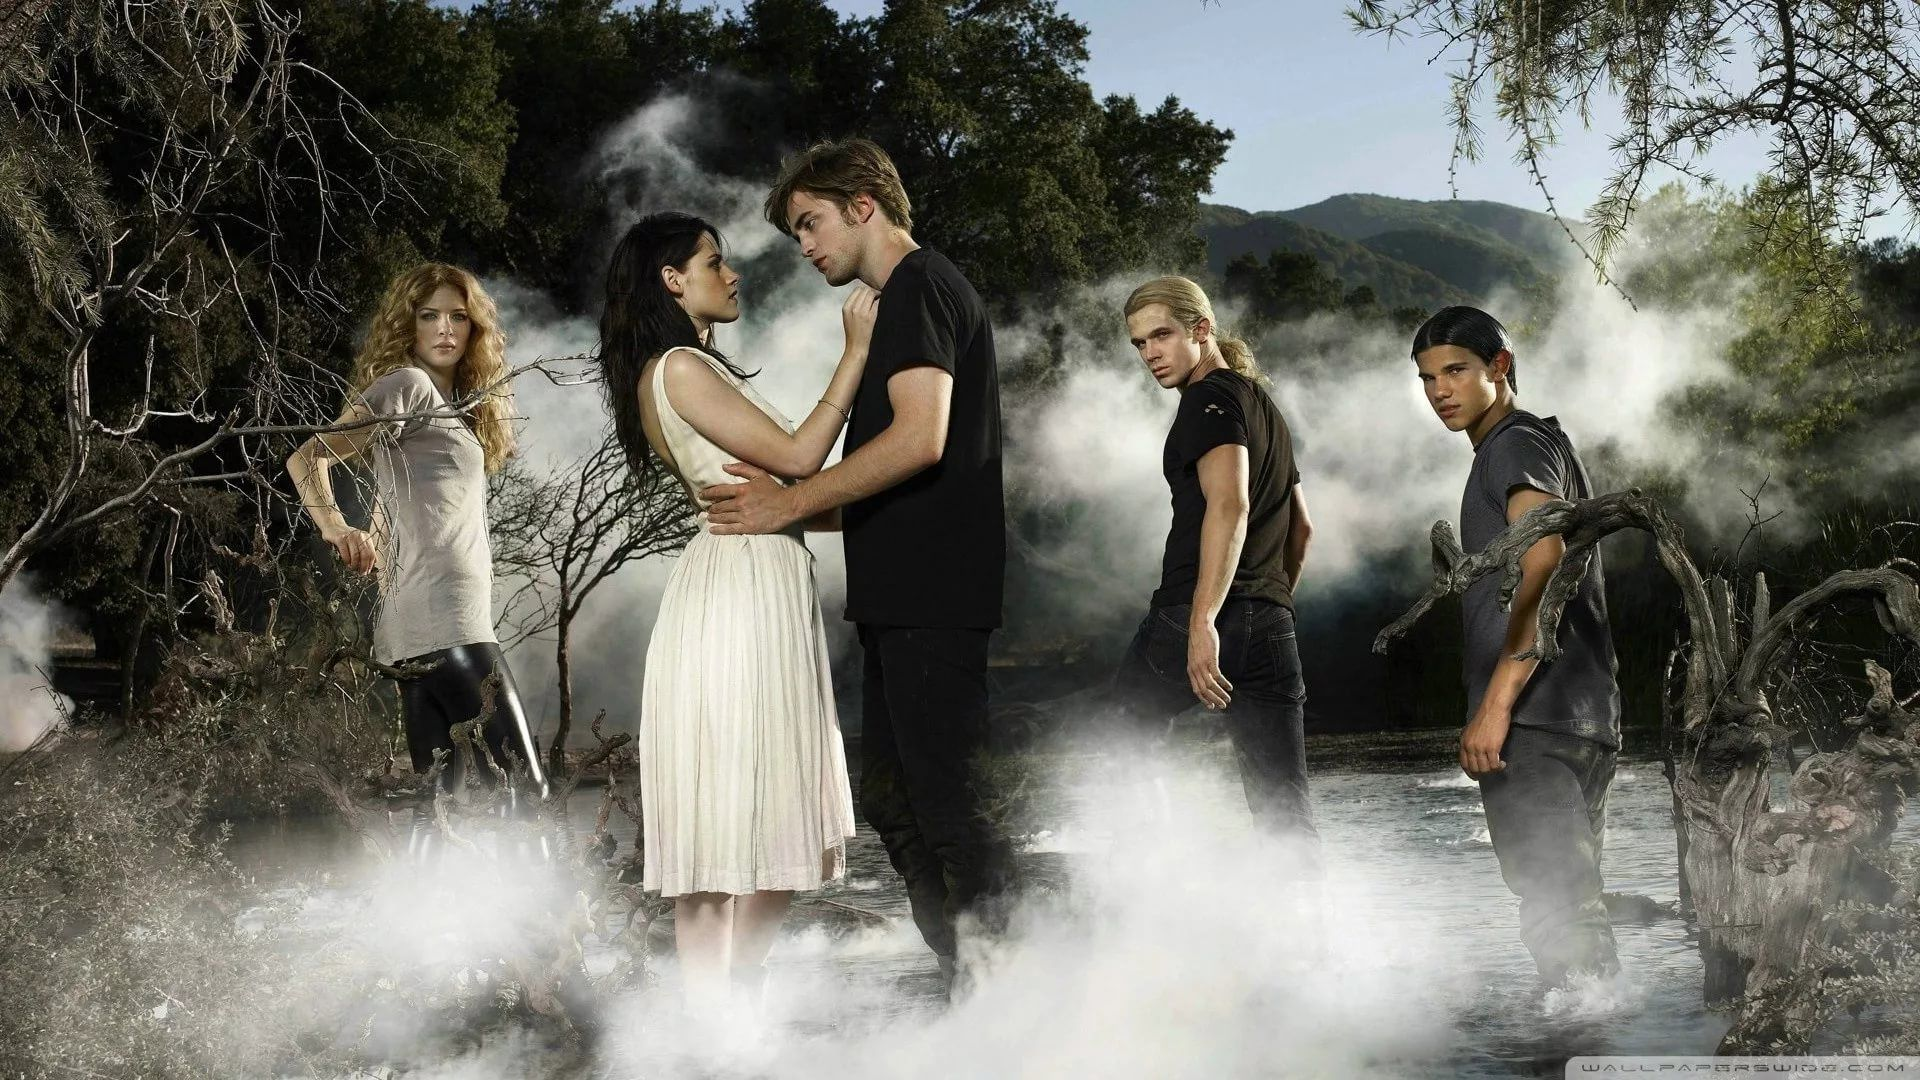 Twilight Saga wallpaper download